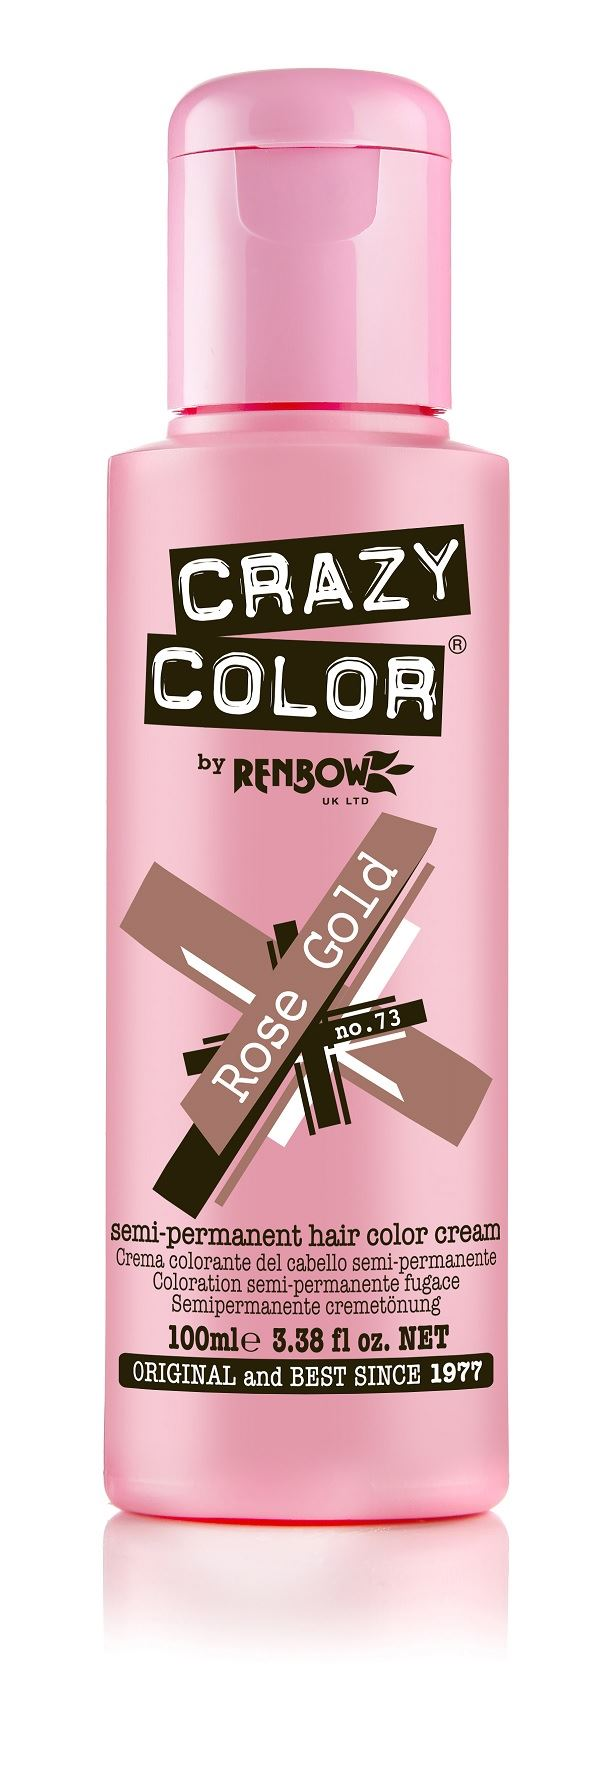 Crazy-Color-Colour-Semi-Permanent-Hair-Dye-1-2-4-or-8-packs-available